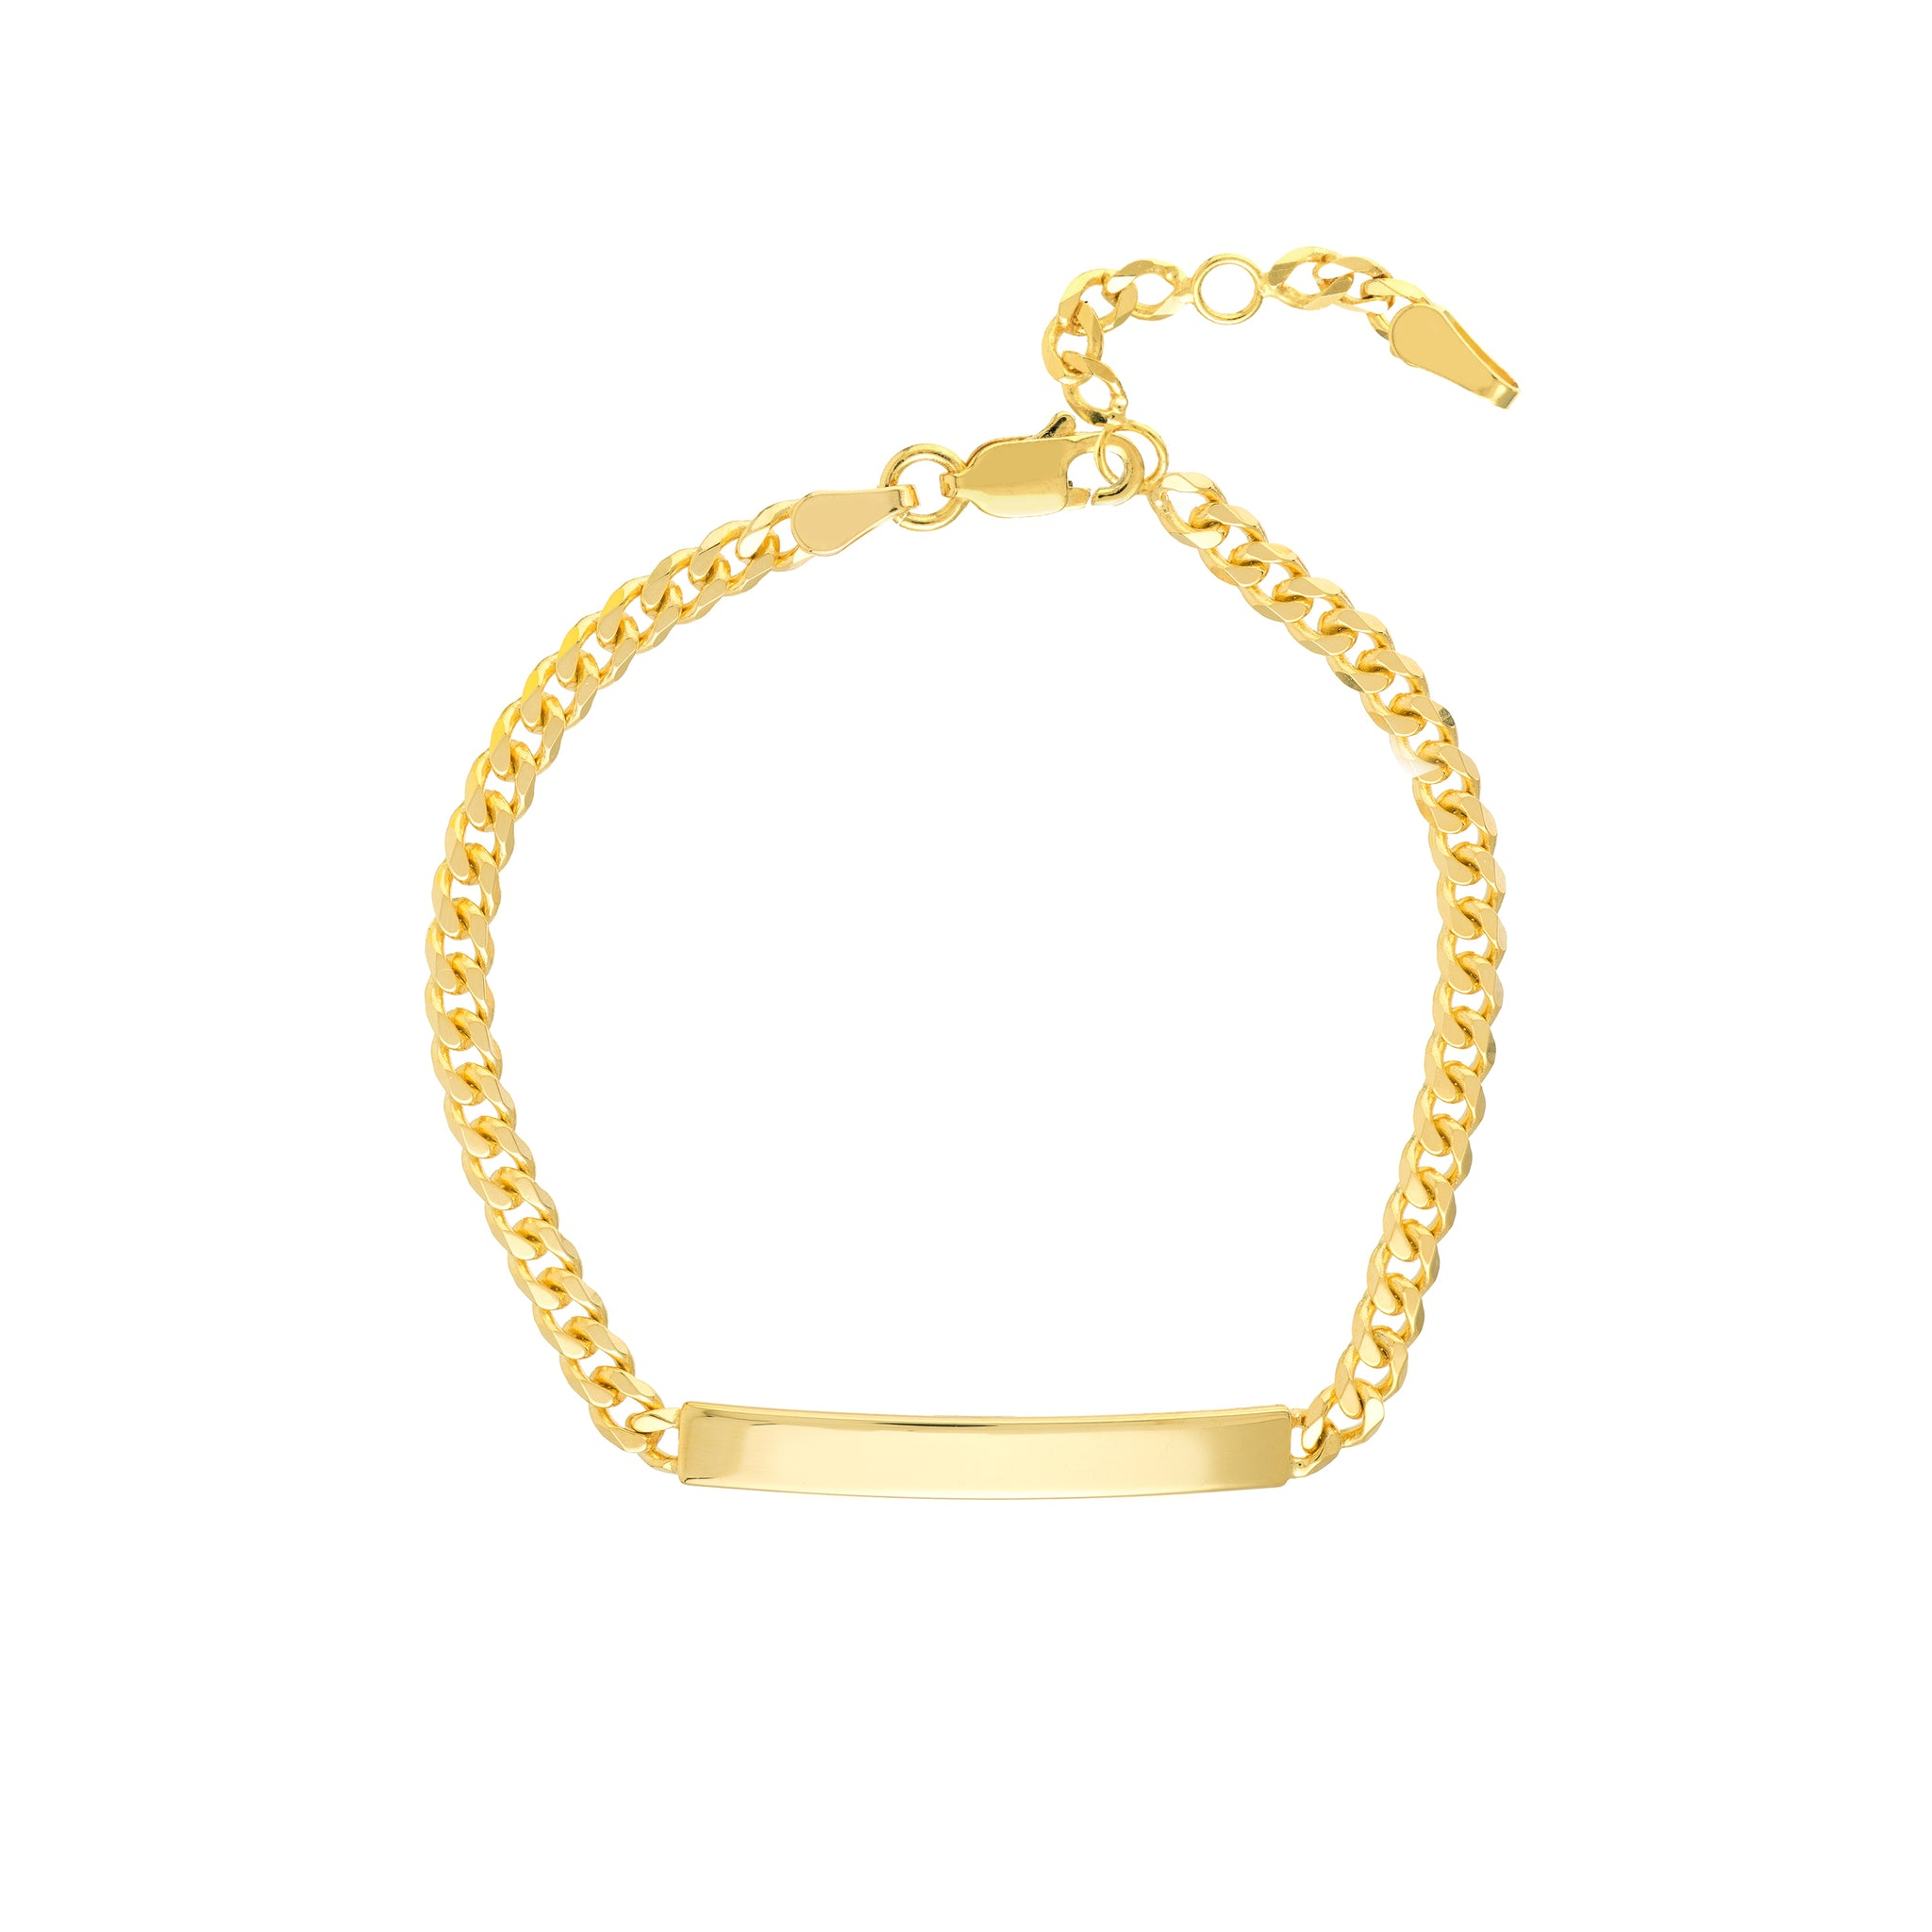 Hemsleys Collection 14K Yellow Gold Cuban Link ID Bracelet